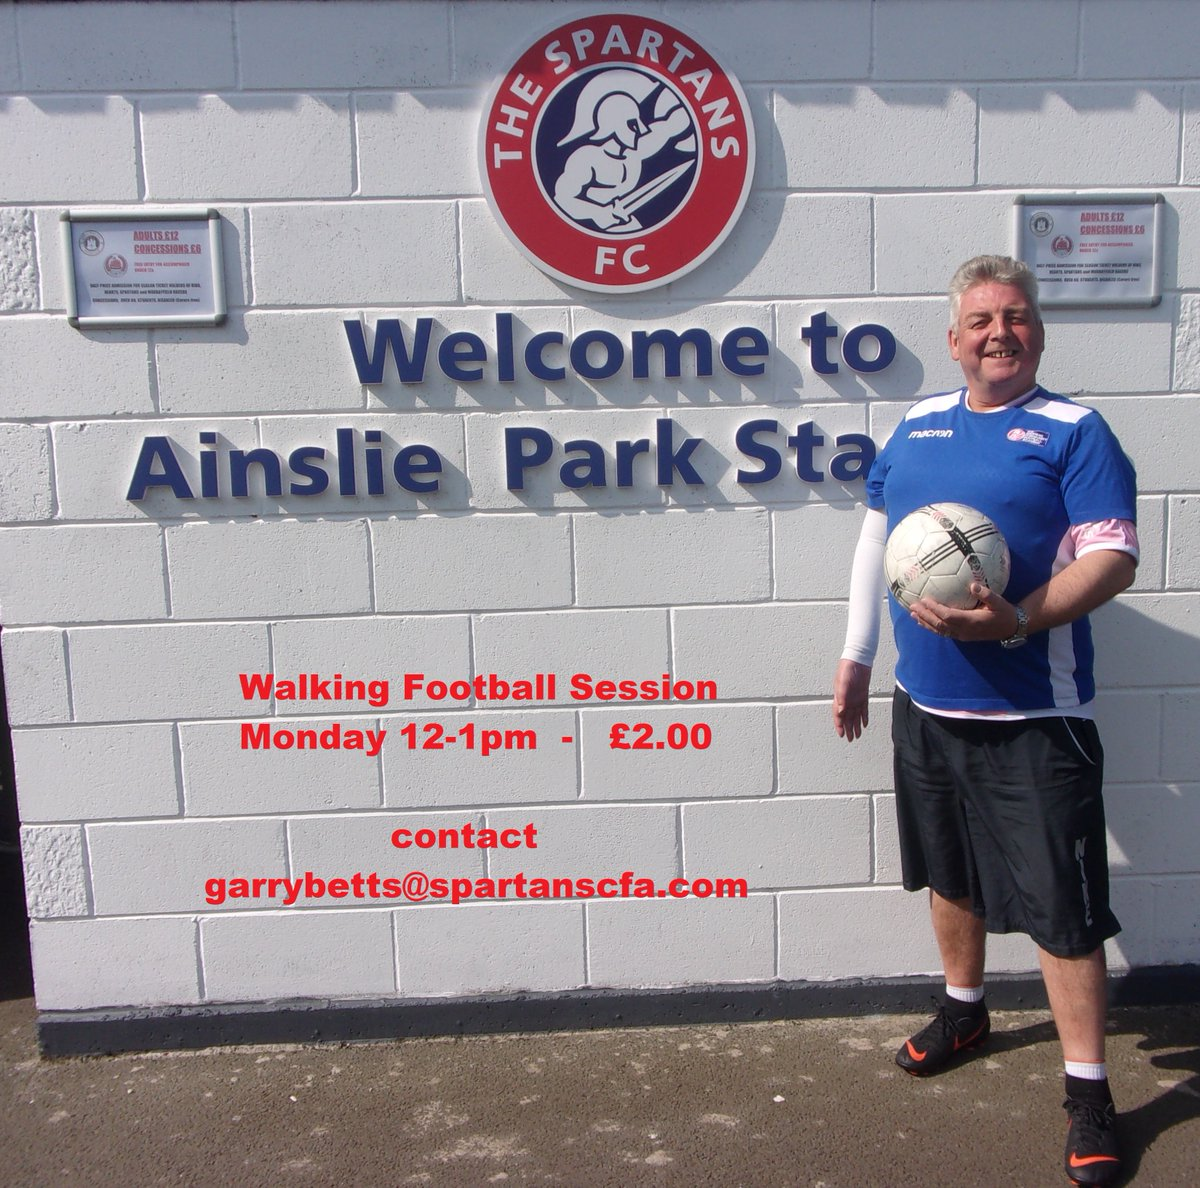 Join the gang! Waking football for all abilities at The Academy on today 12-1pm. Email garrybetts@spartanscfa.com or call 0131 552 7854 for more info. #walkingfootball #edinburgh<br>http://pic.twitter.com/rztBpdZBdg